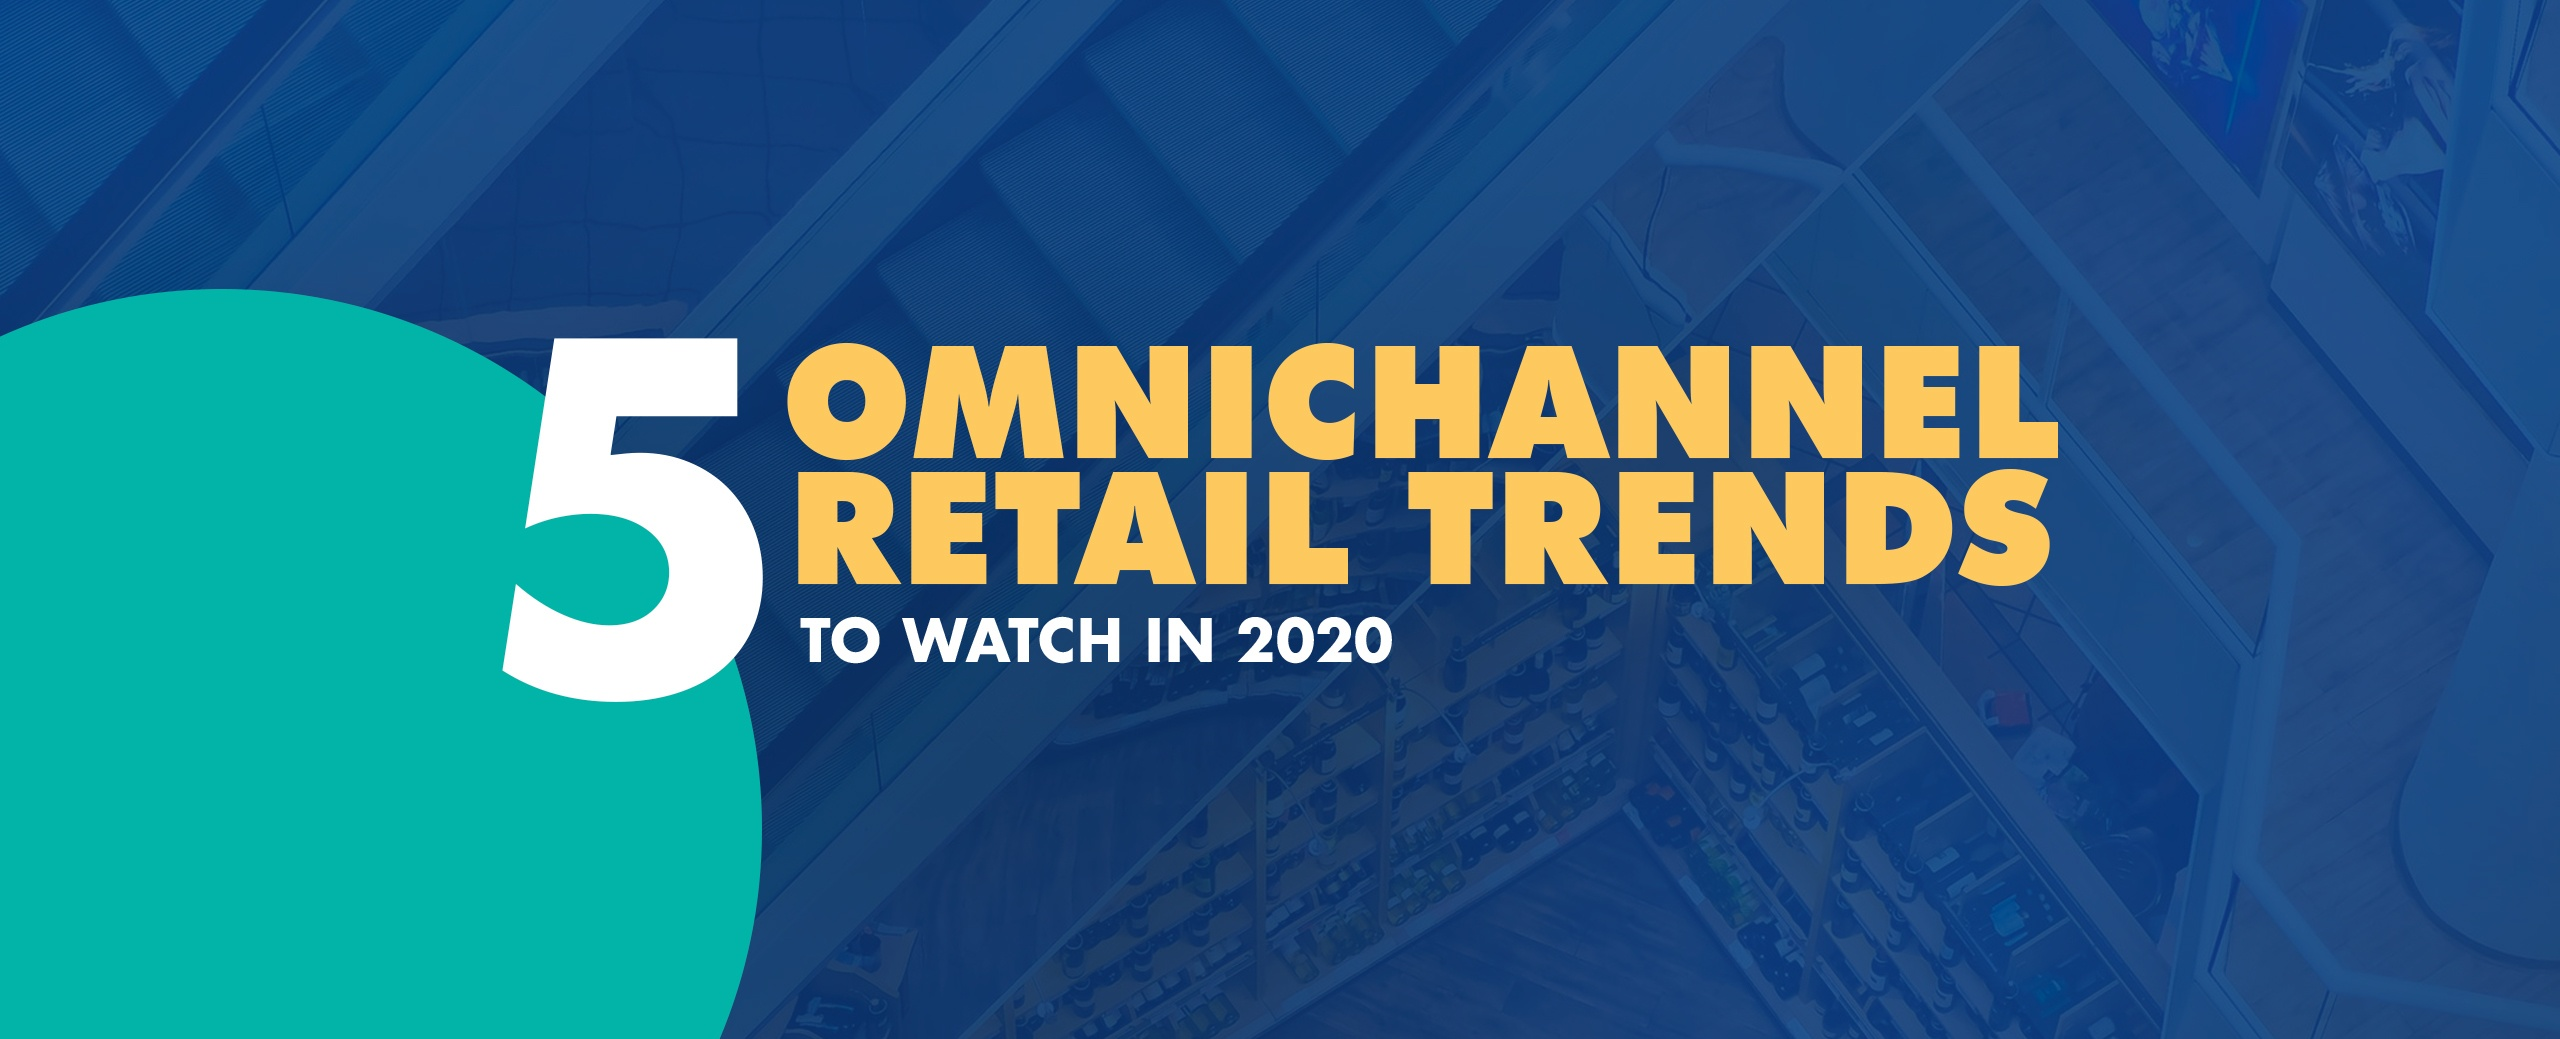 5-Omnichannel-Retail-Trends-to-Watch-in-2020